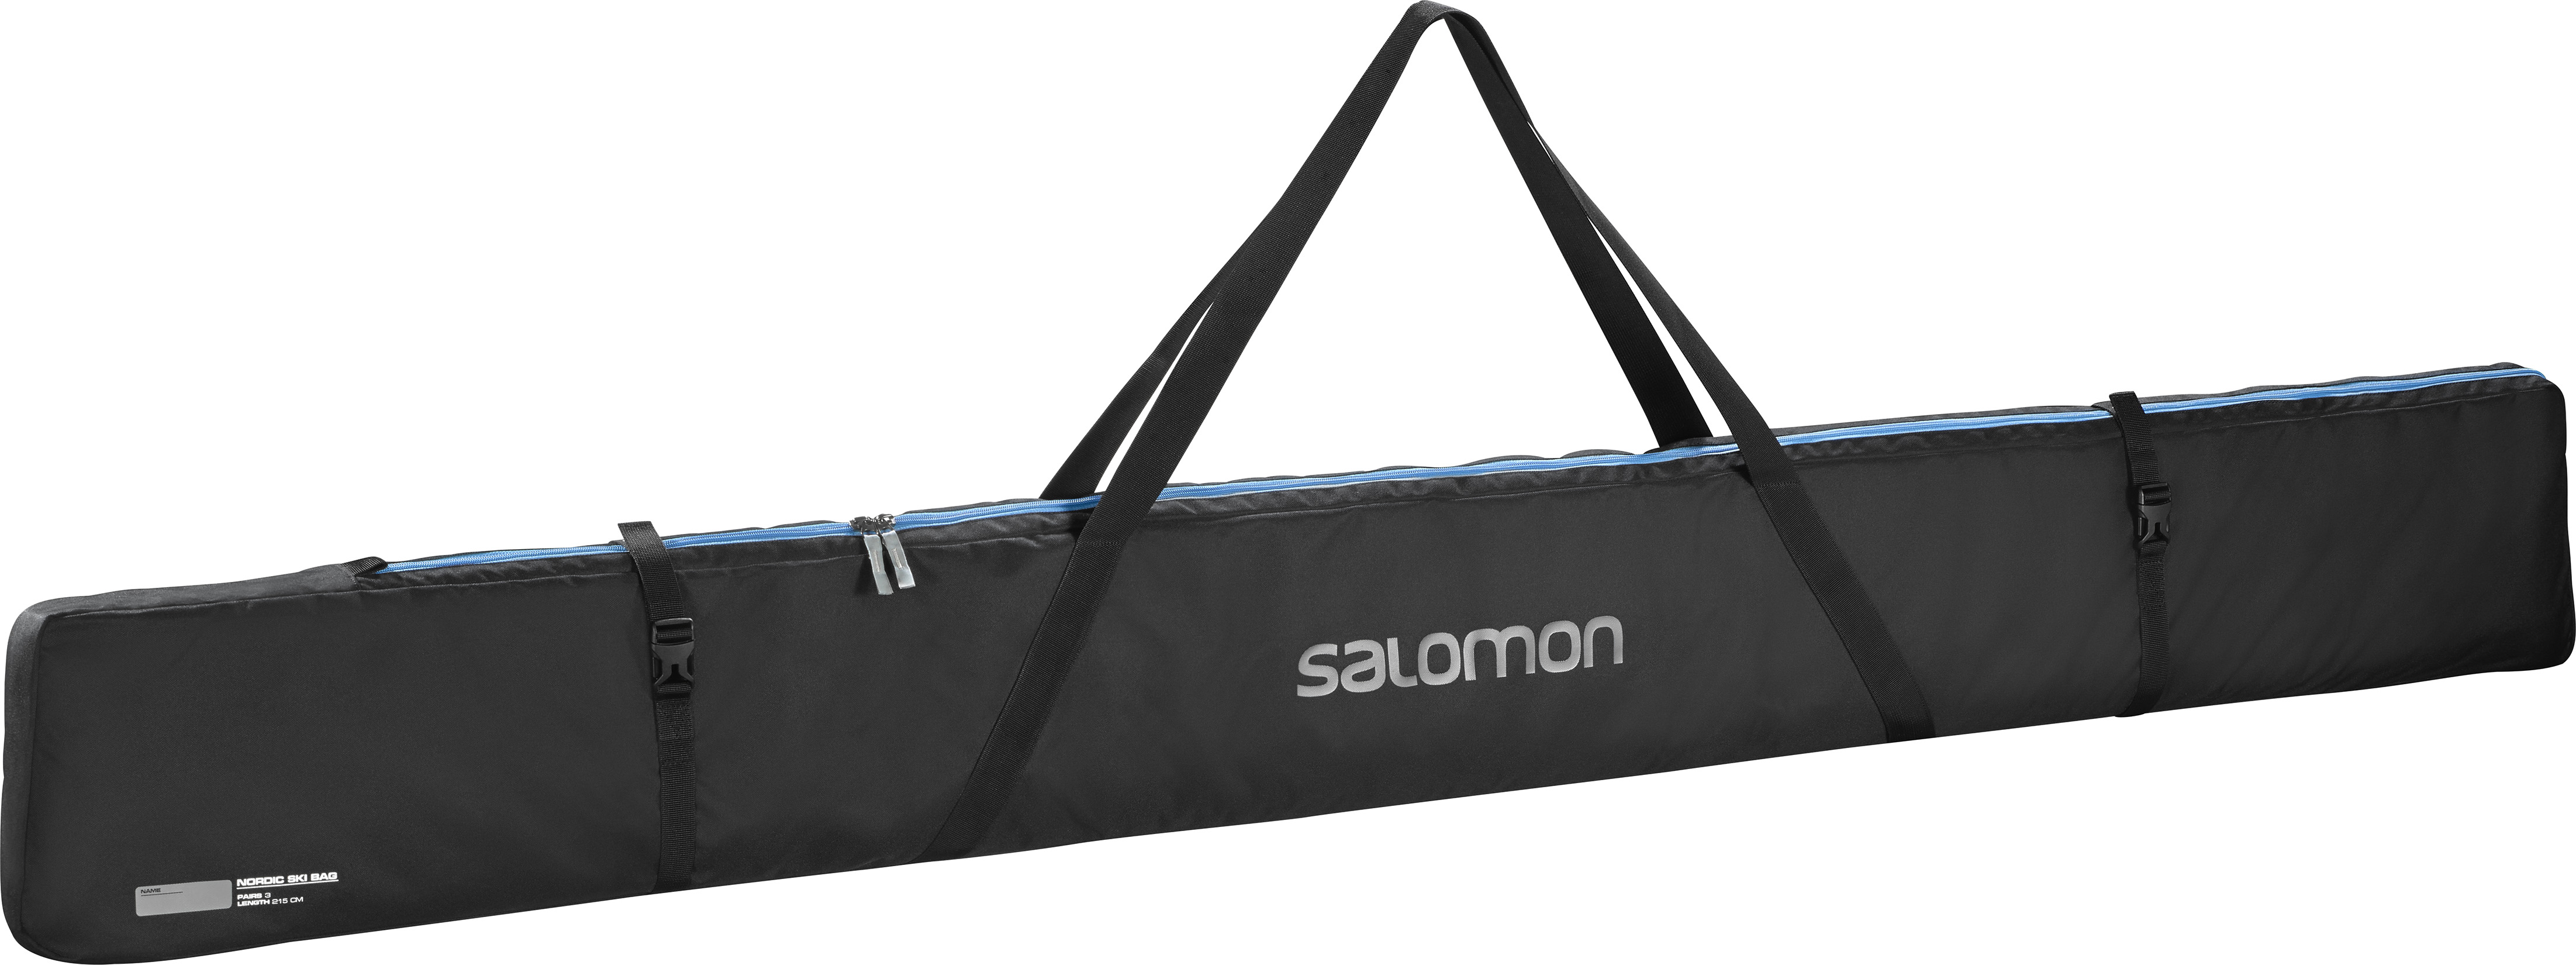 SALOMON NORDIC 3 PAIRS 215 SKI BAG – Black/BL L38299900